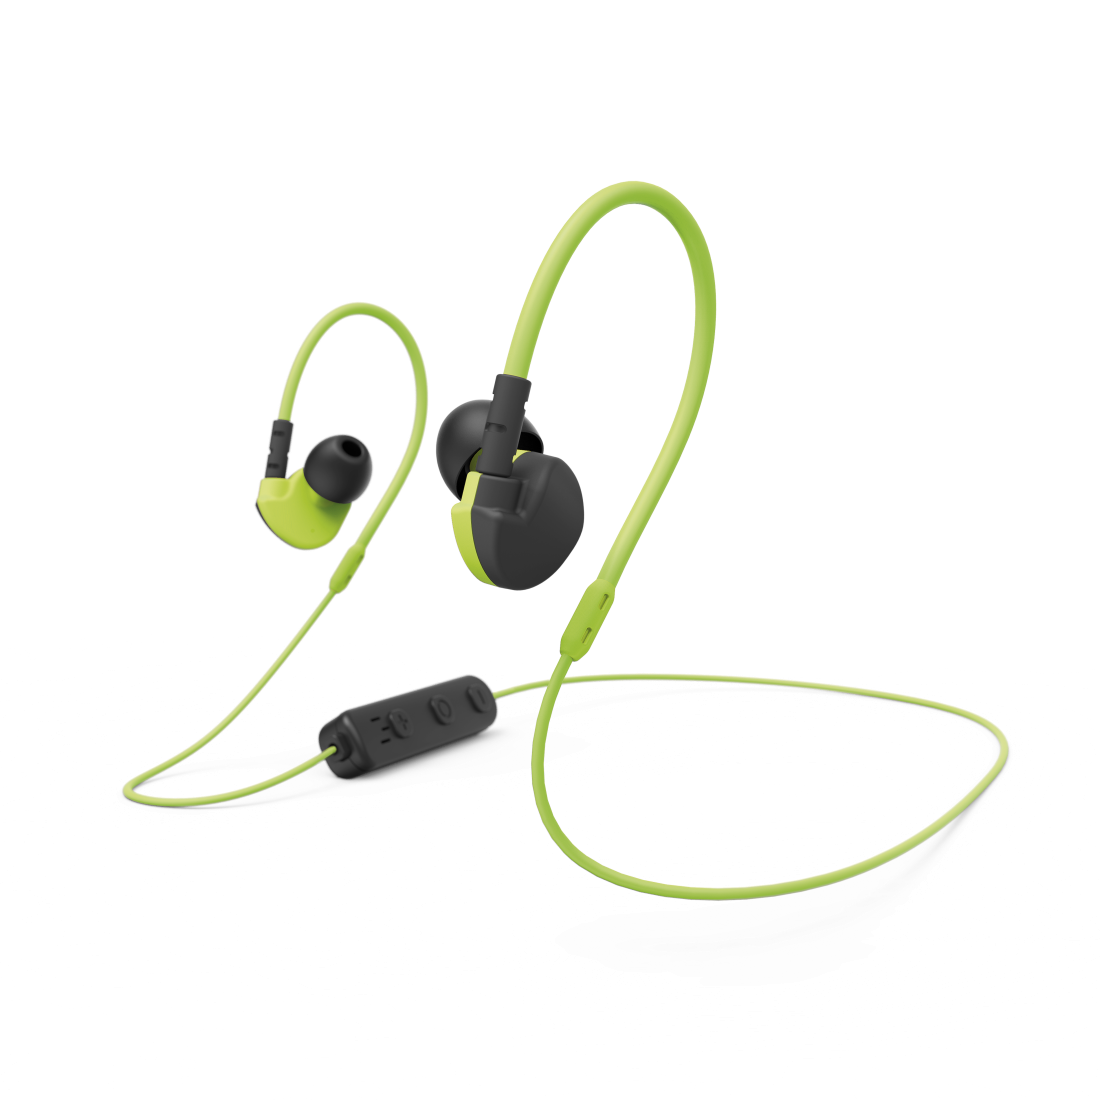 "abx High-Res Image - Hama, Casque sport Bluetooth® ""Active BT"", intr-aur., mic., tr d'or., nr/jne"